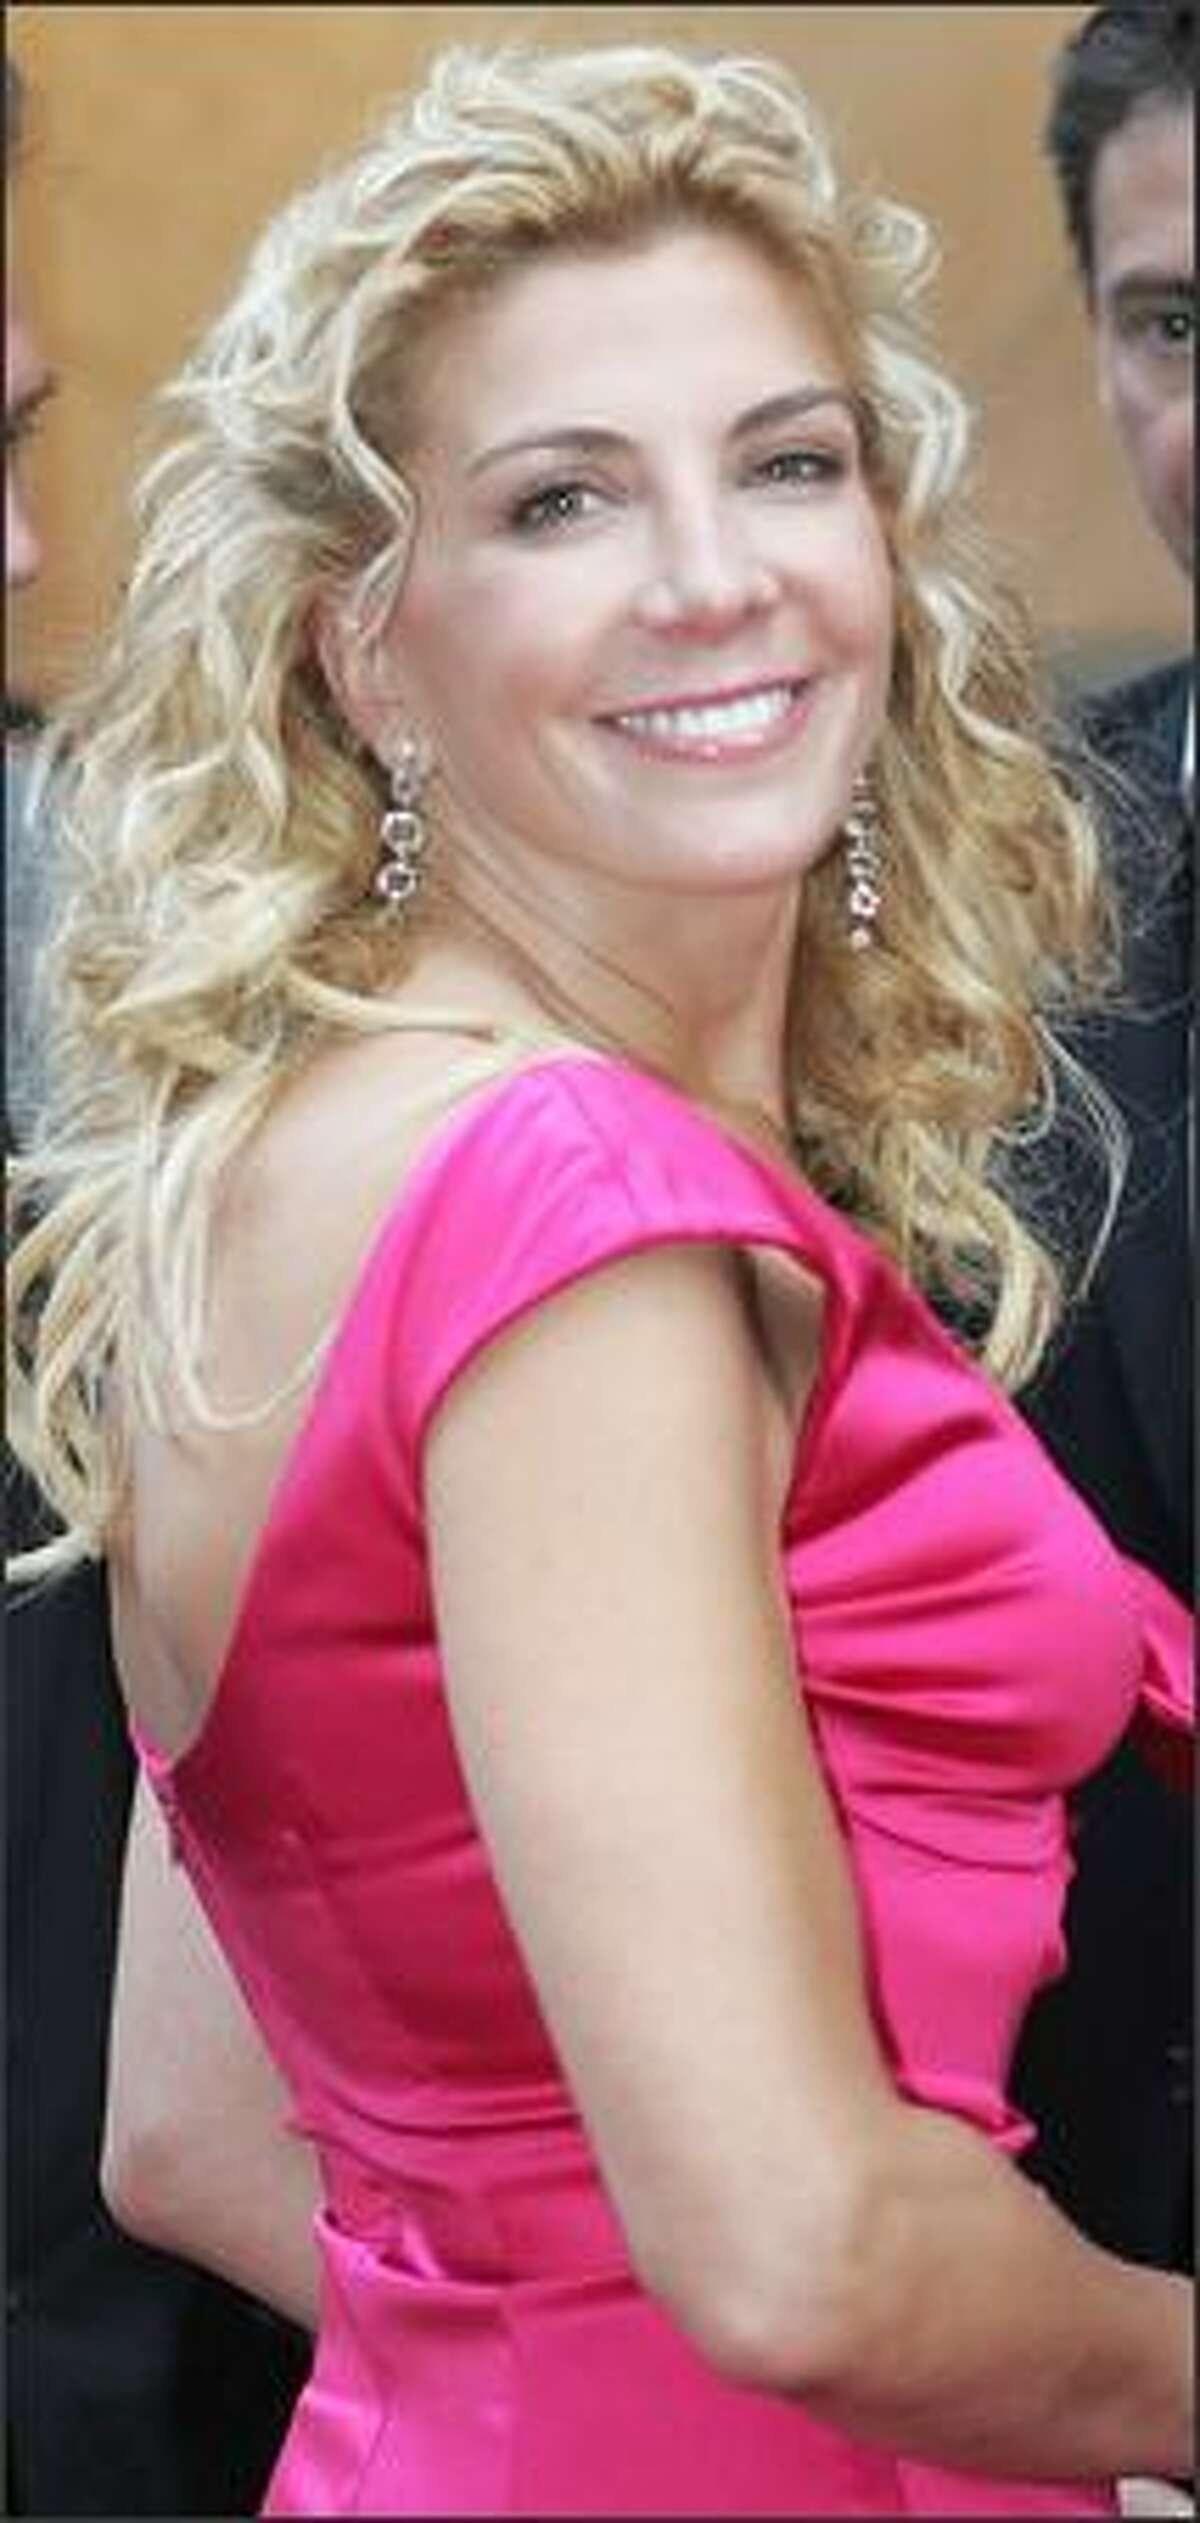 Actress Natasha Richardson looks confident and well-adjusted as she arrives at the New York premiere of